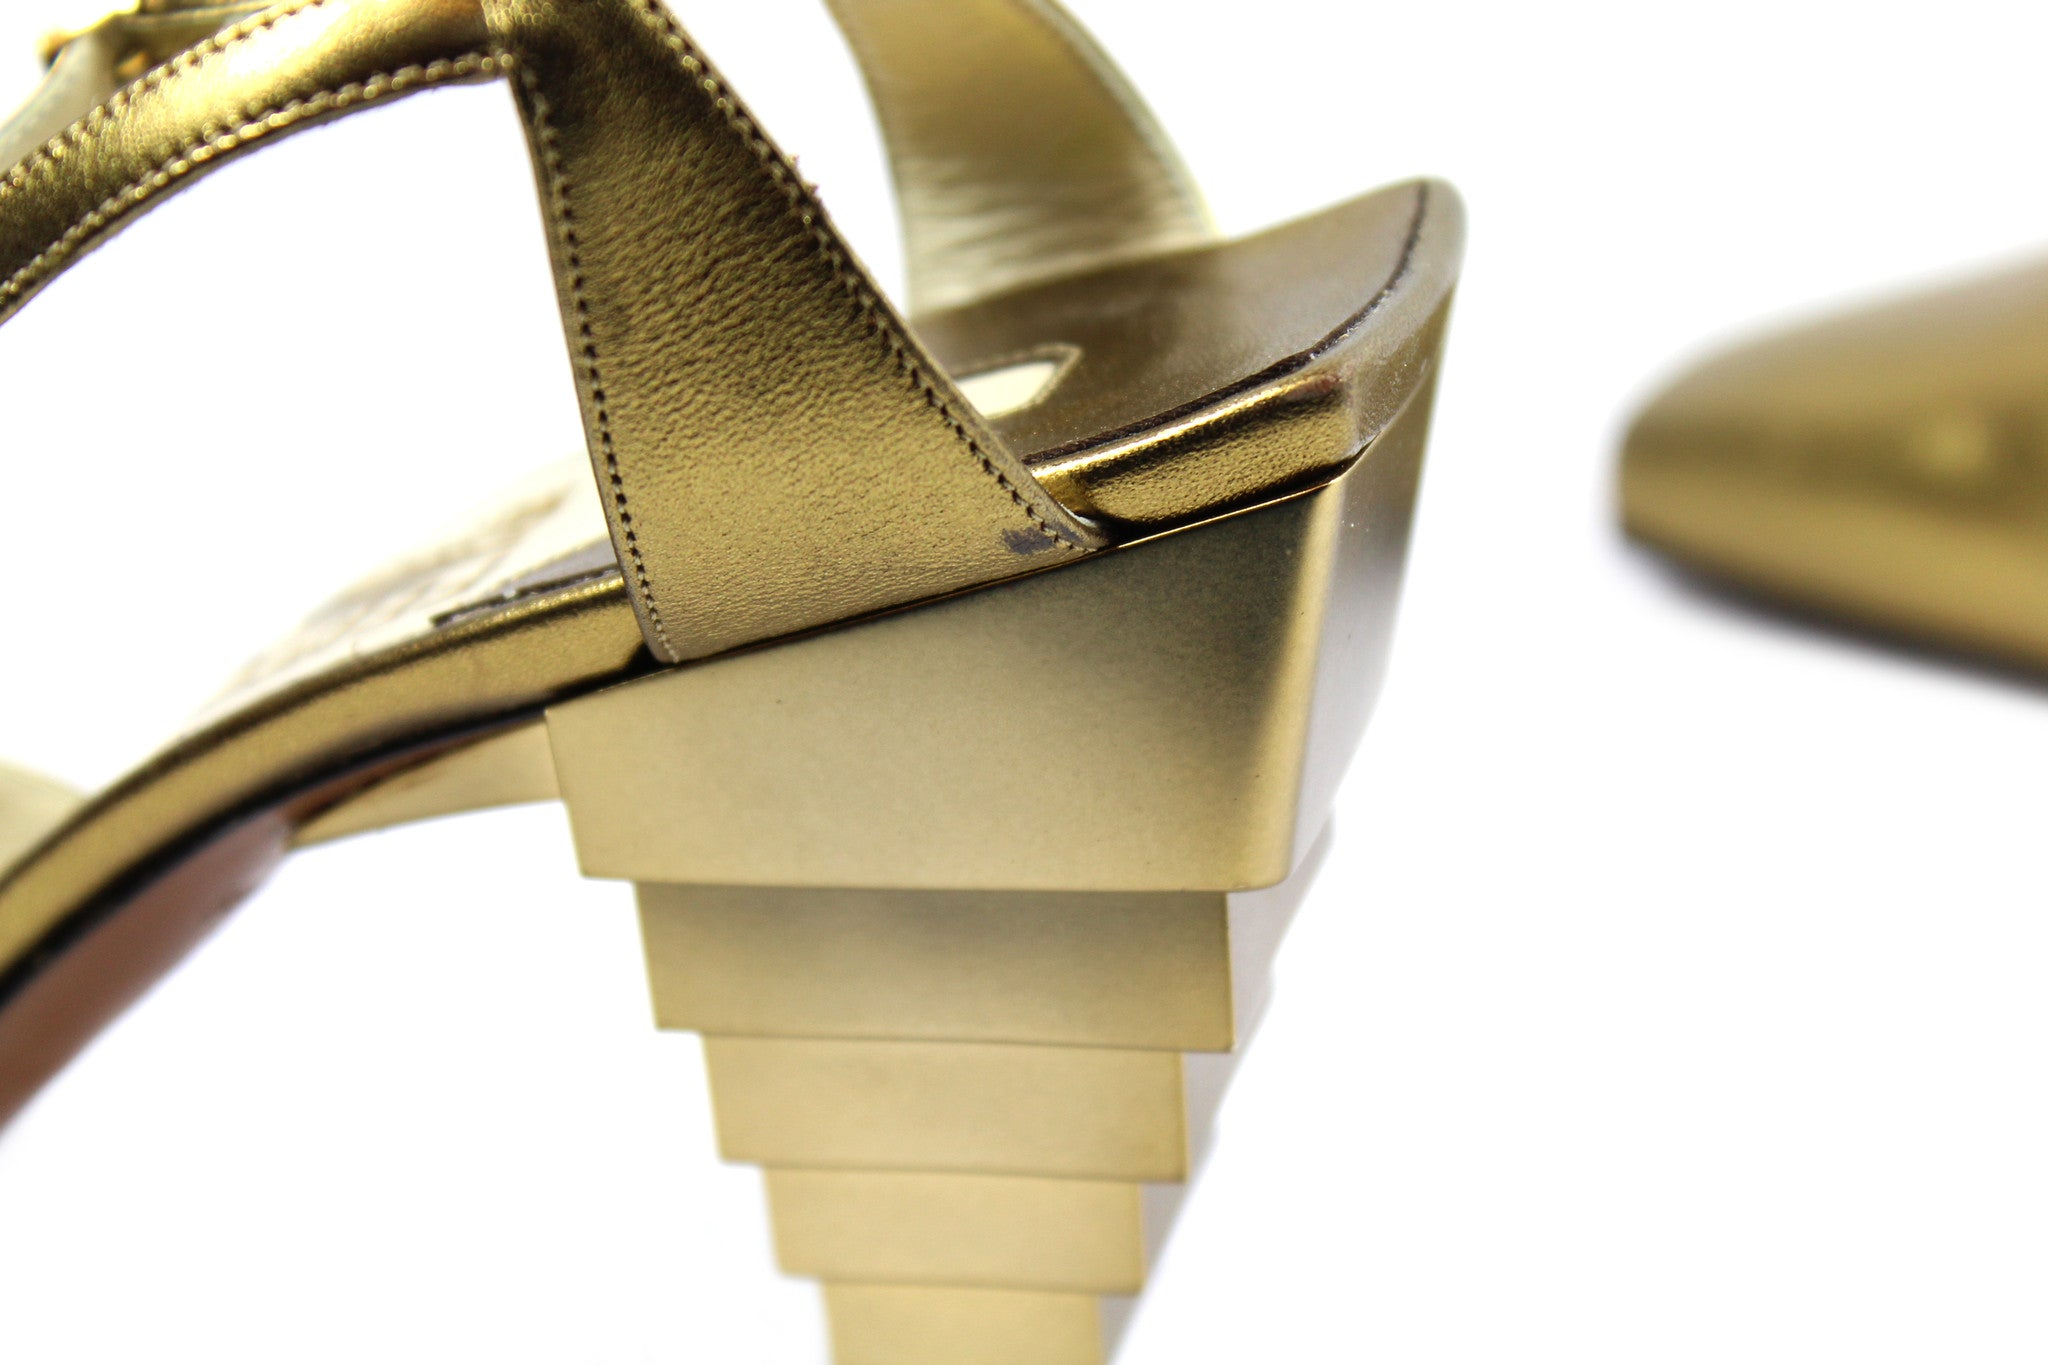 Salvatore Ferragamo 1930s Gold Pyramid Sandals (Size 6) - Encore Consignment - 8